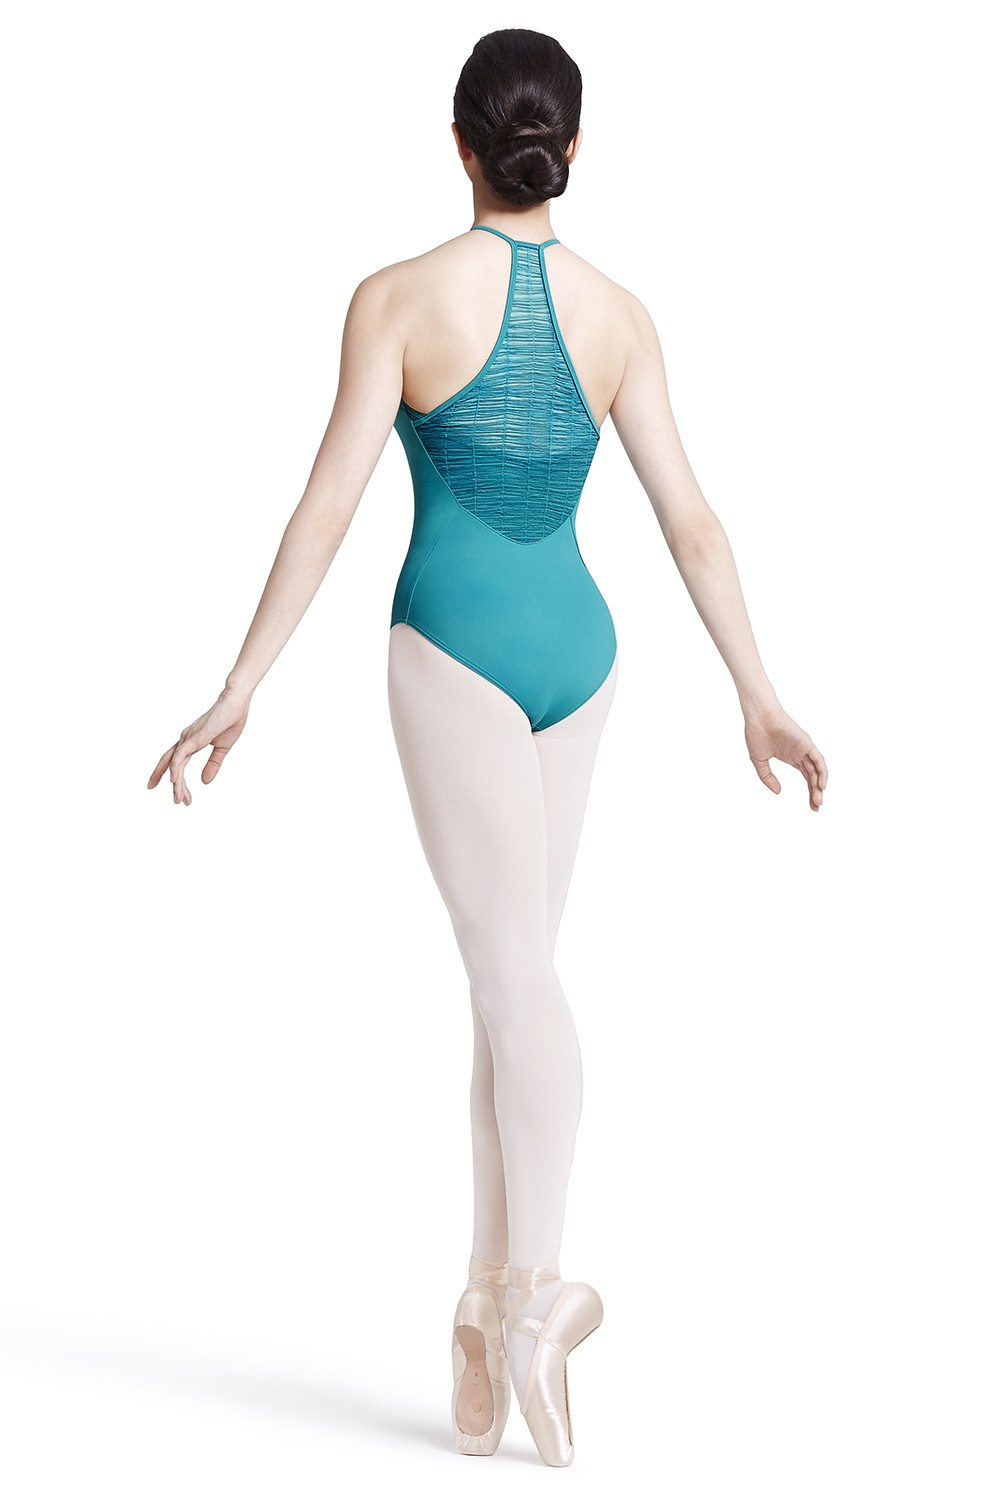 Body A Spalline Sottili Con Dorso A Vogatore Women's Dance Leotards